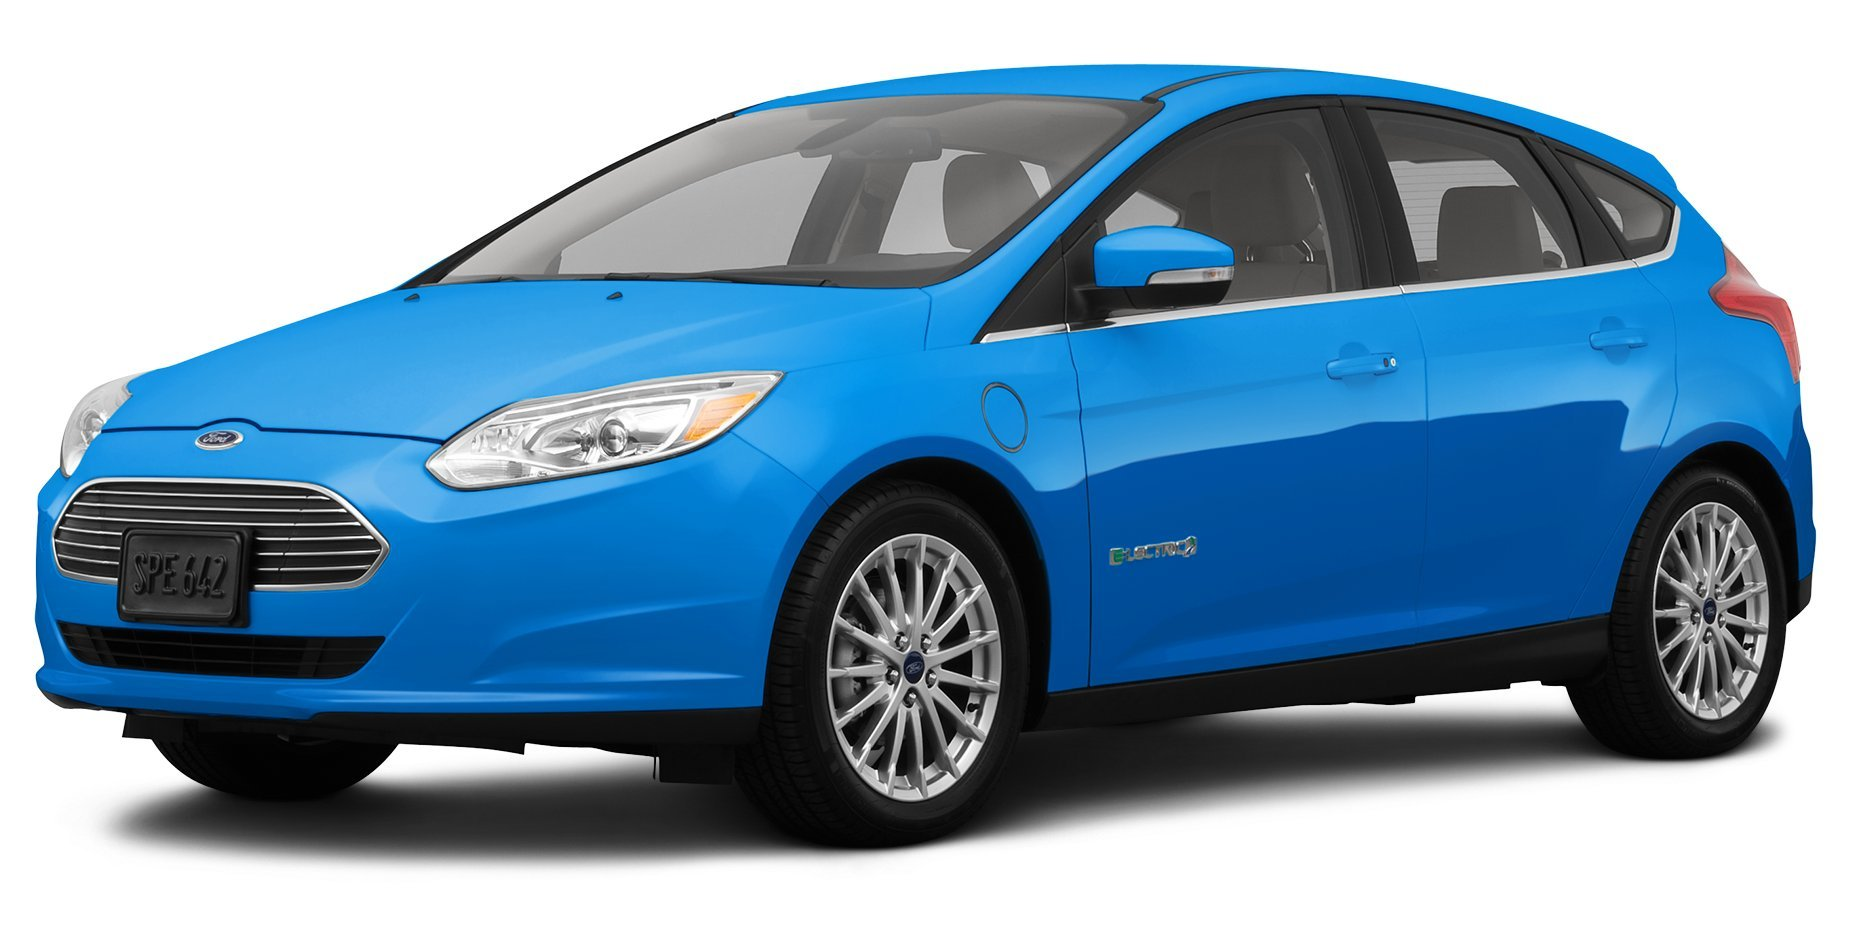 2012 ford focus reviews images and specs. Black Bedroom Furniture Sets. Home Design Ideas